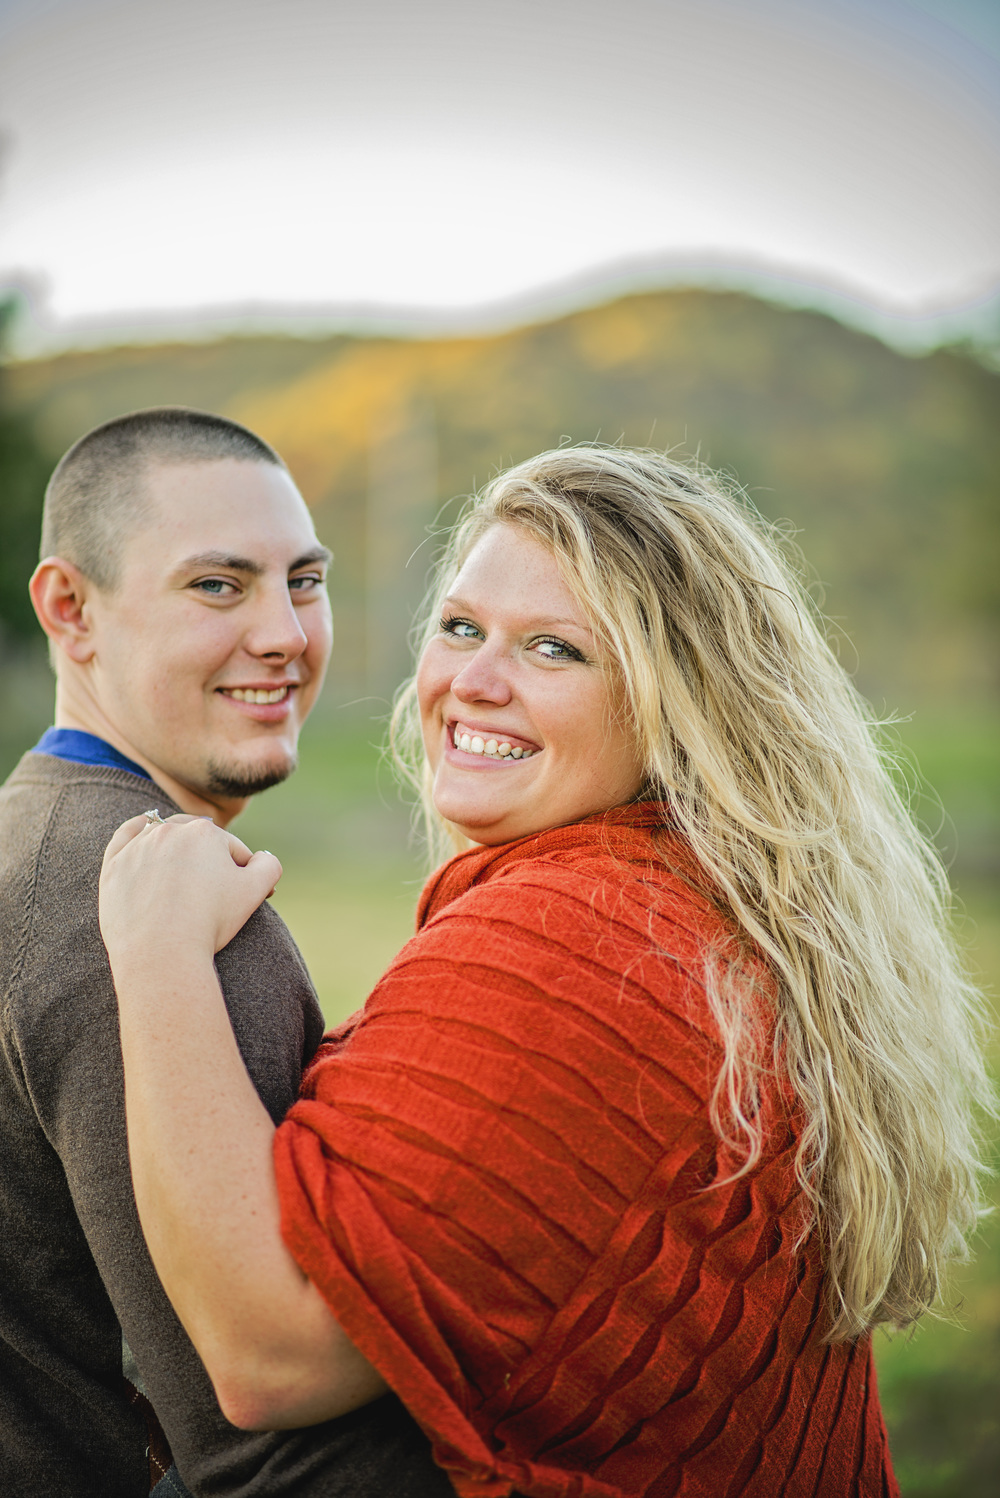 fall_romantic_orchard_engagement_session_lynchburg_va019.jpg